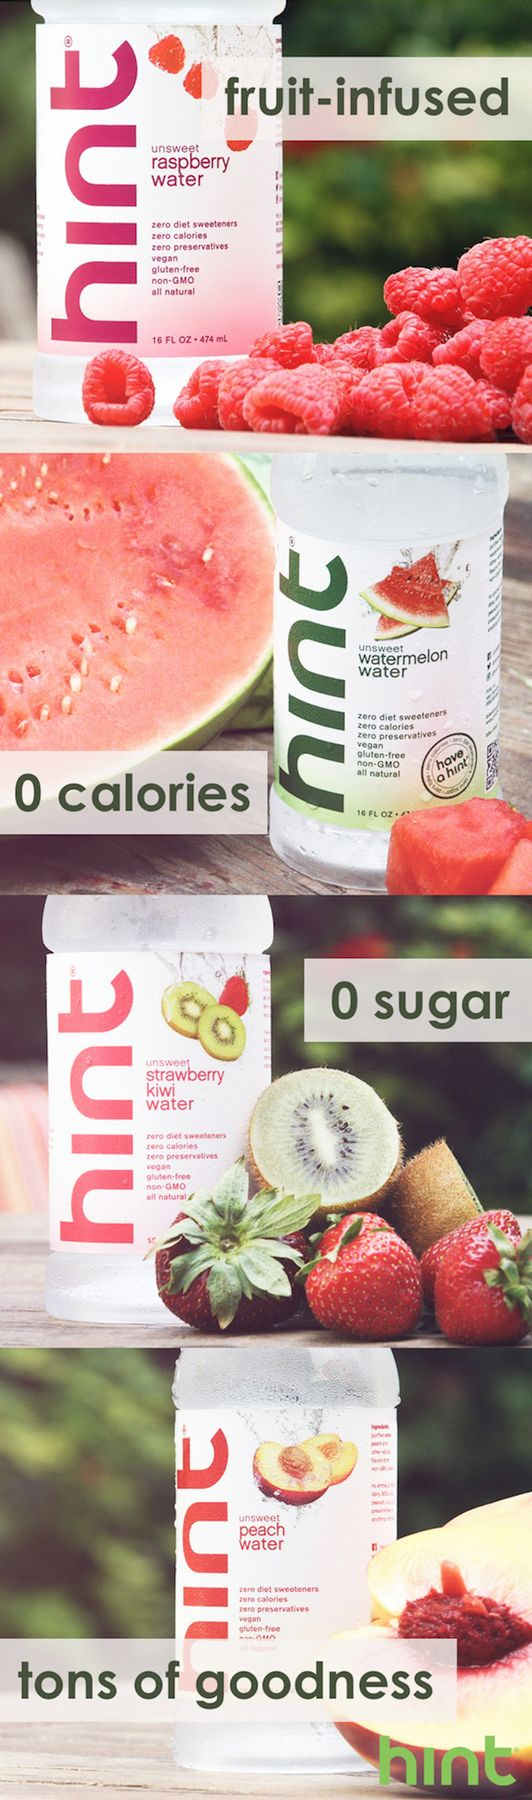 the formula of a delicious & healthy drink. all-natural water with a splash of your favorite fruit. take 10% off your first order with promo code PIN10. ends 12/31/15.